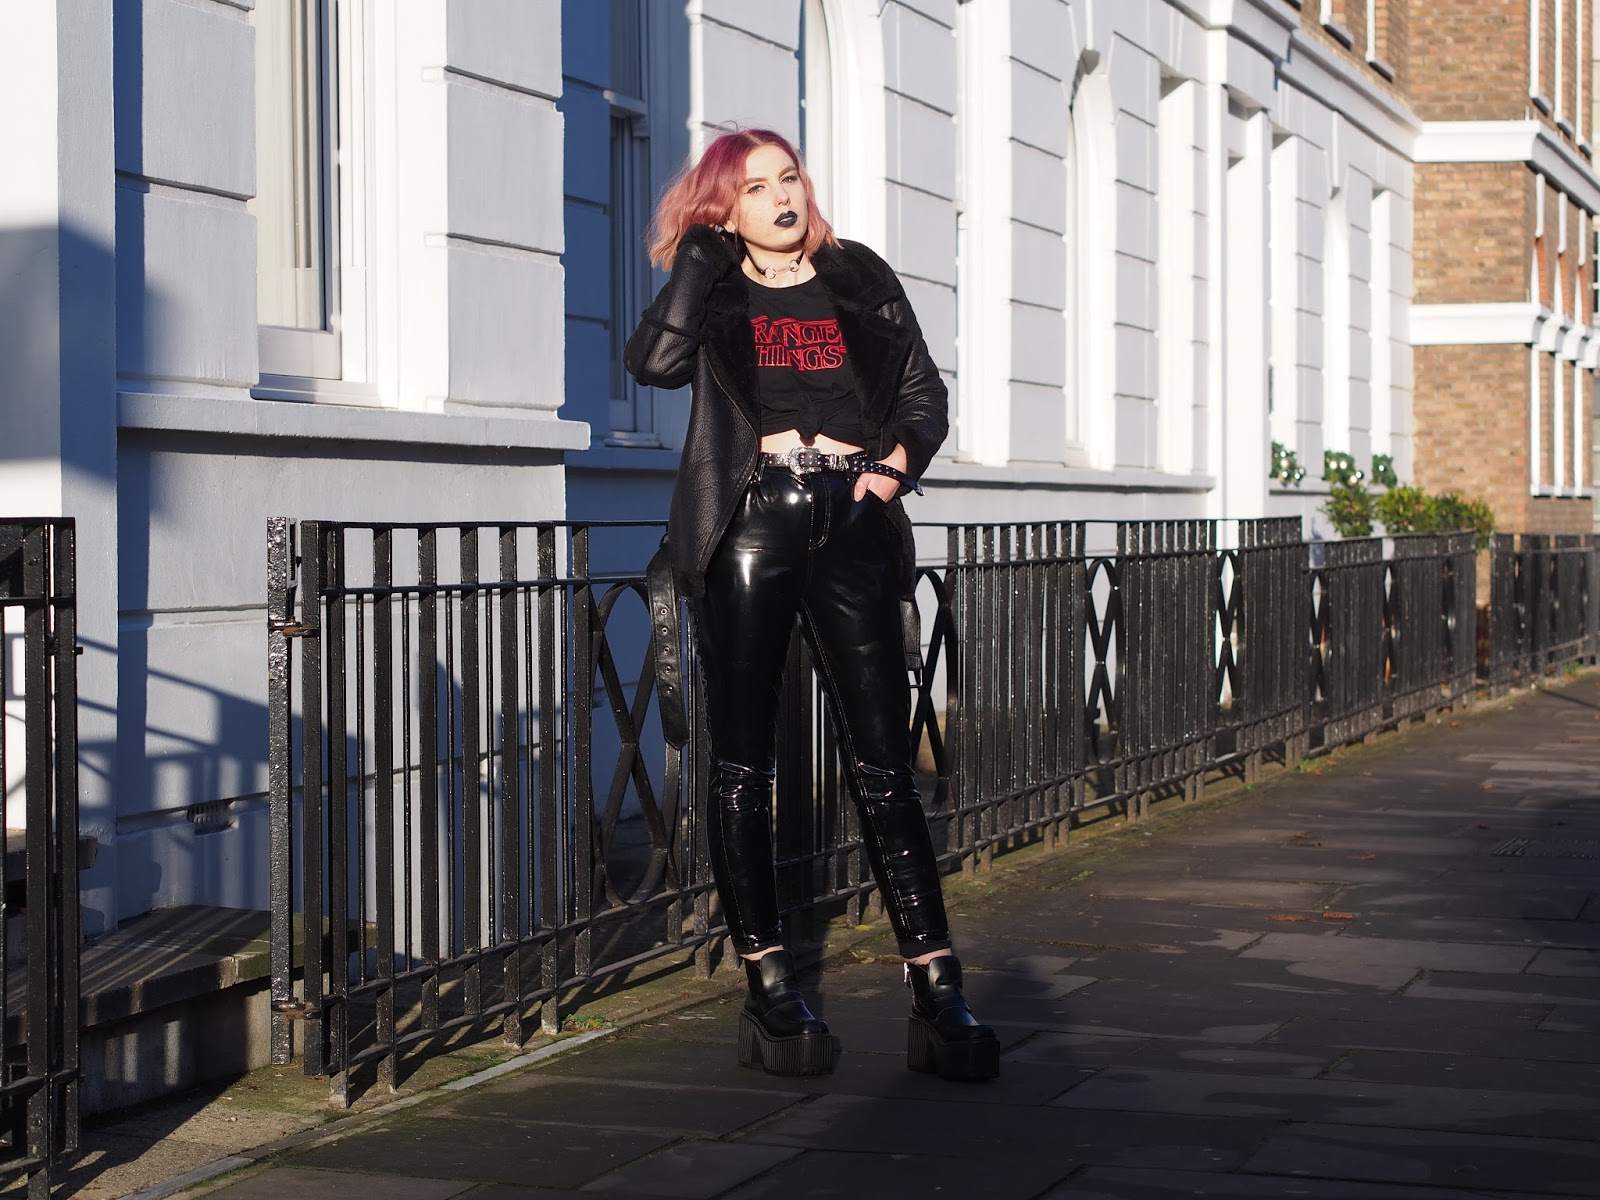 london street style, uk fashion blogger, grunge outfit ideas, grunge outfits, grunge blogger, uk fashion blogger, street style blogger, london fashion blogger